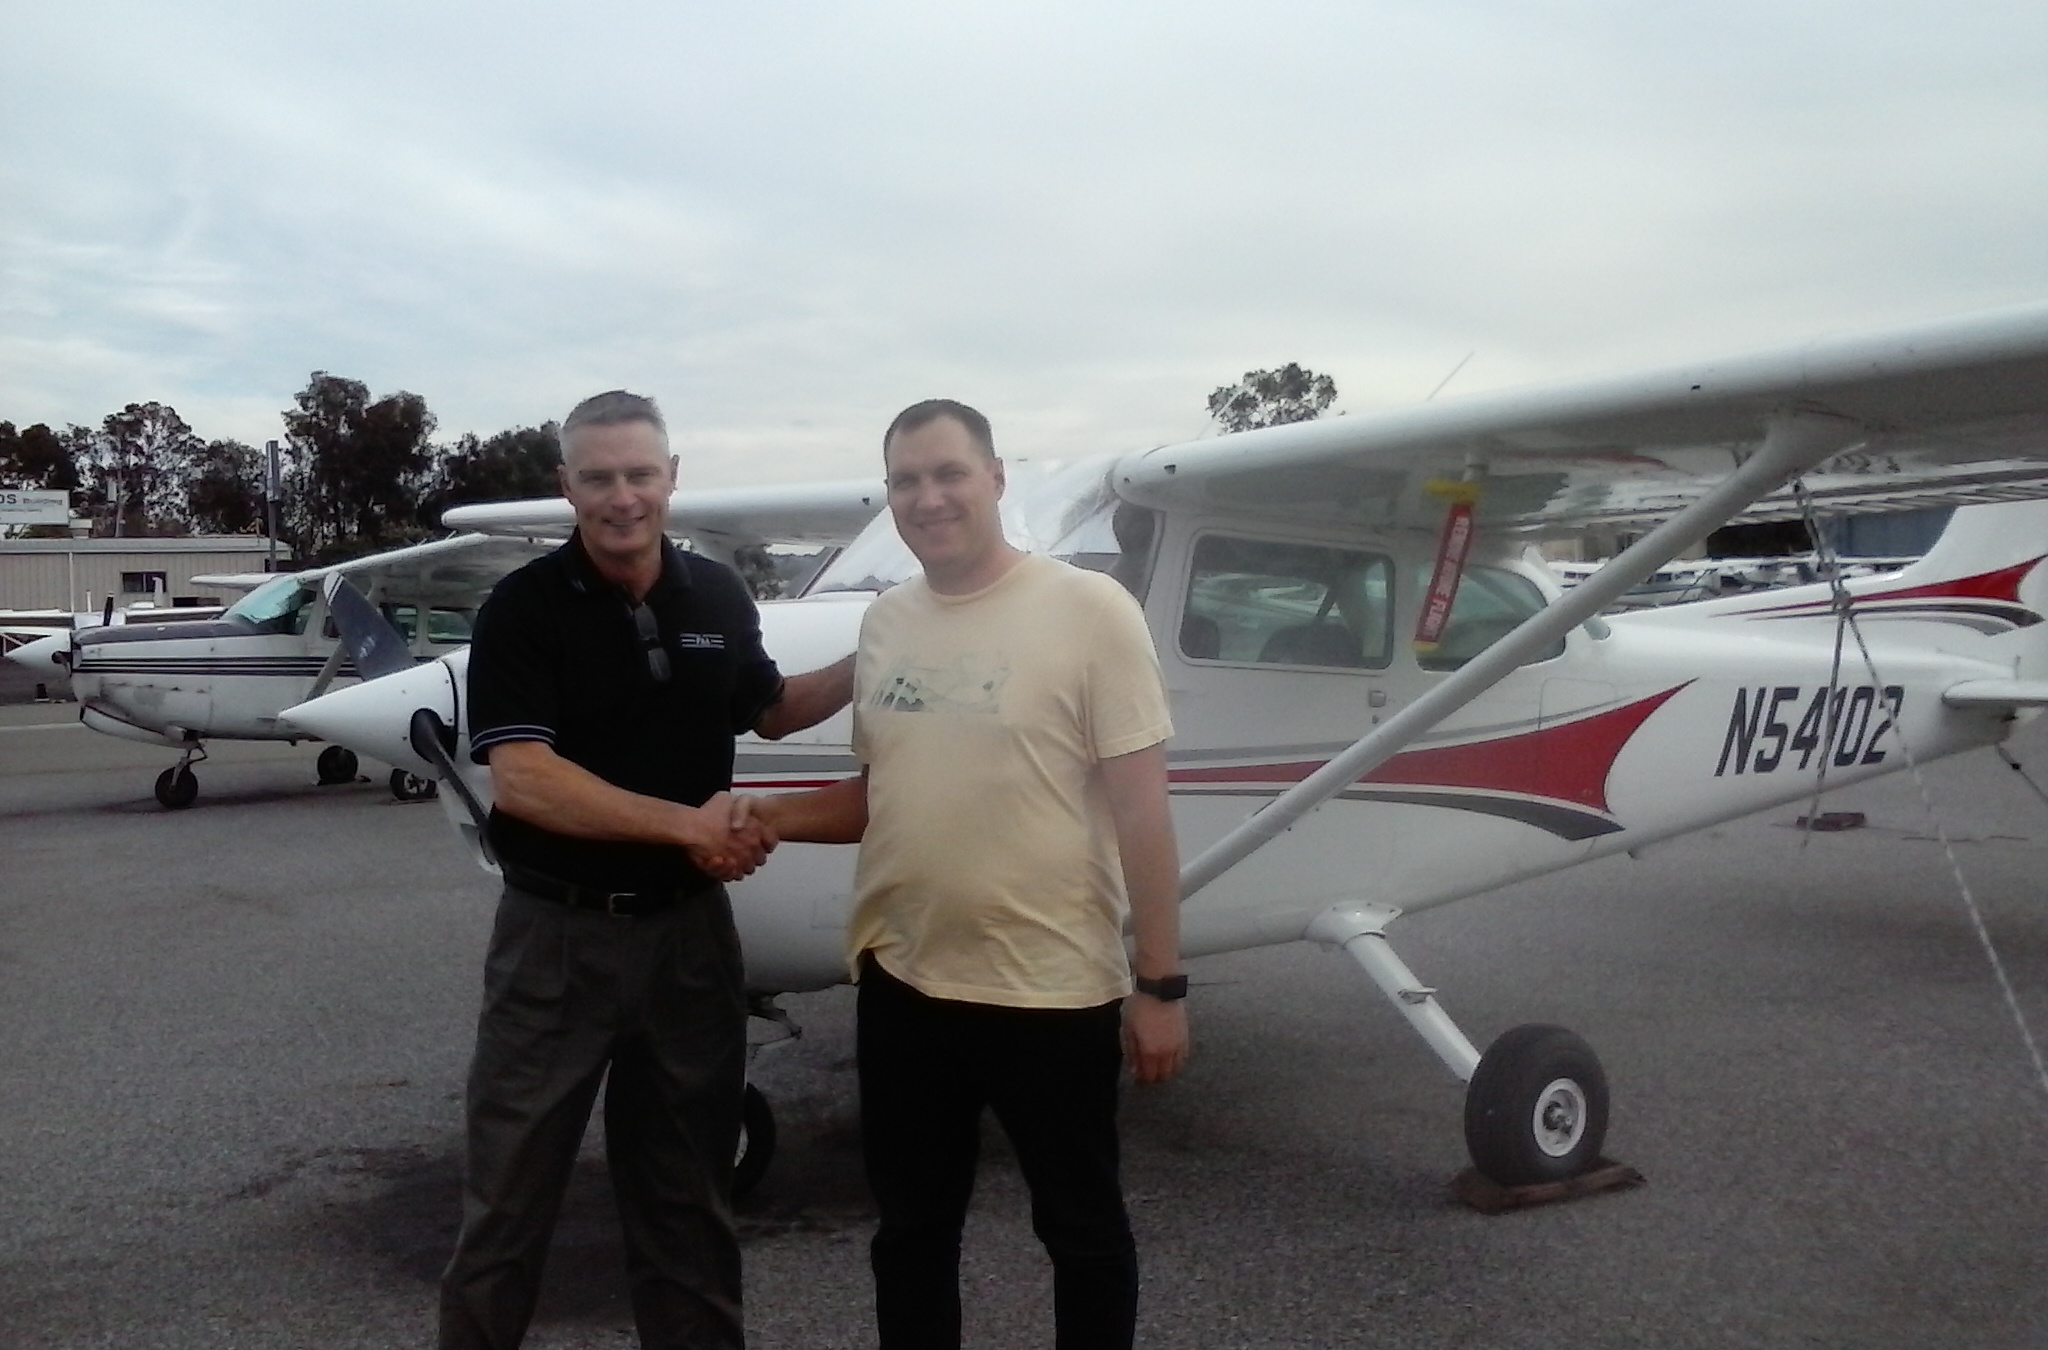 Private Pilot Checkride PAssed after flight training at AeroDynamic Aviation San Jose